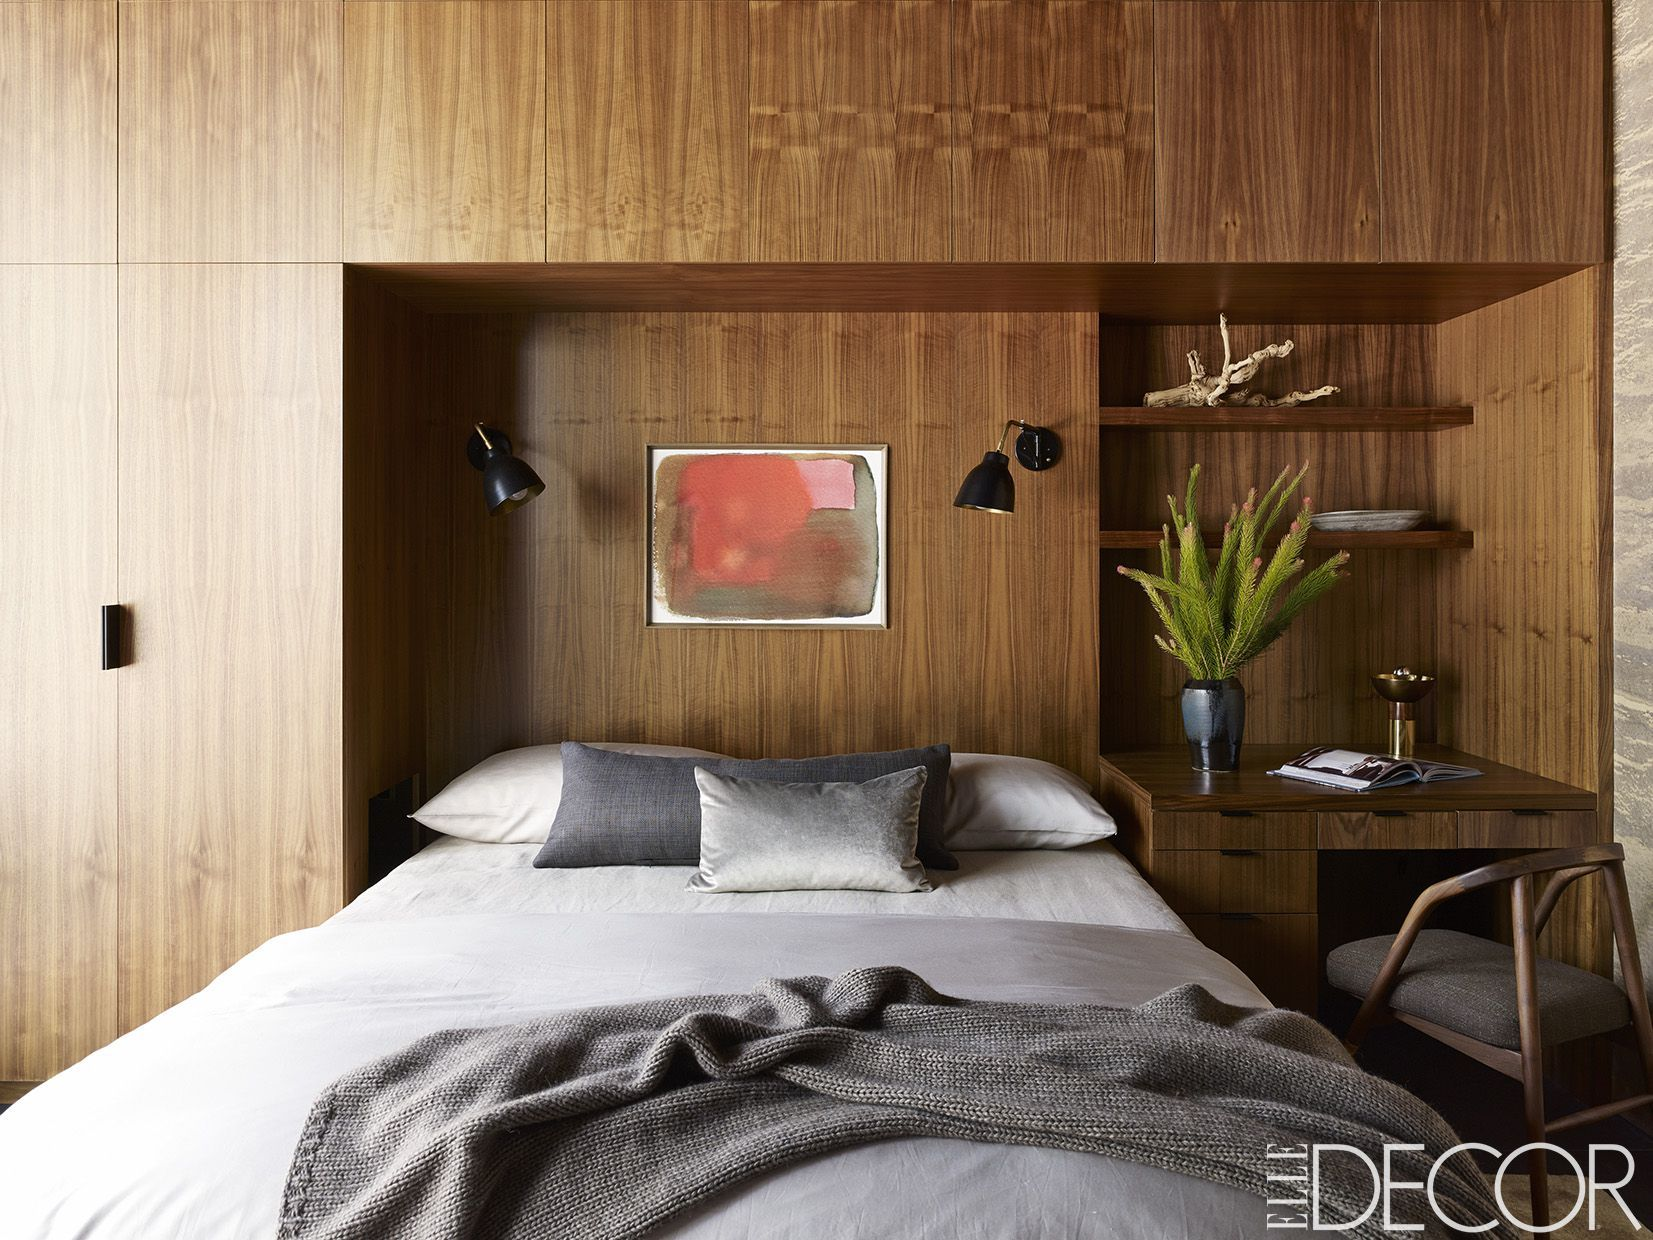 Awesome 50+ Small Bedroom Decorating Ideas That Maximize Coziness